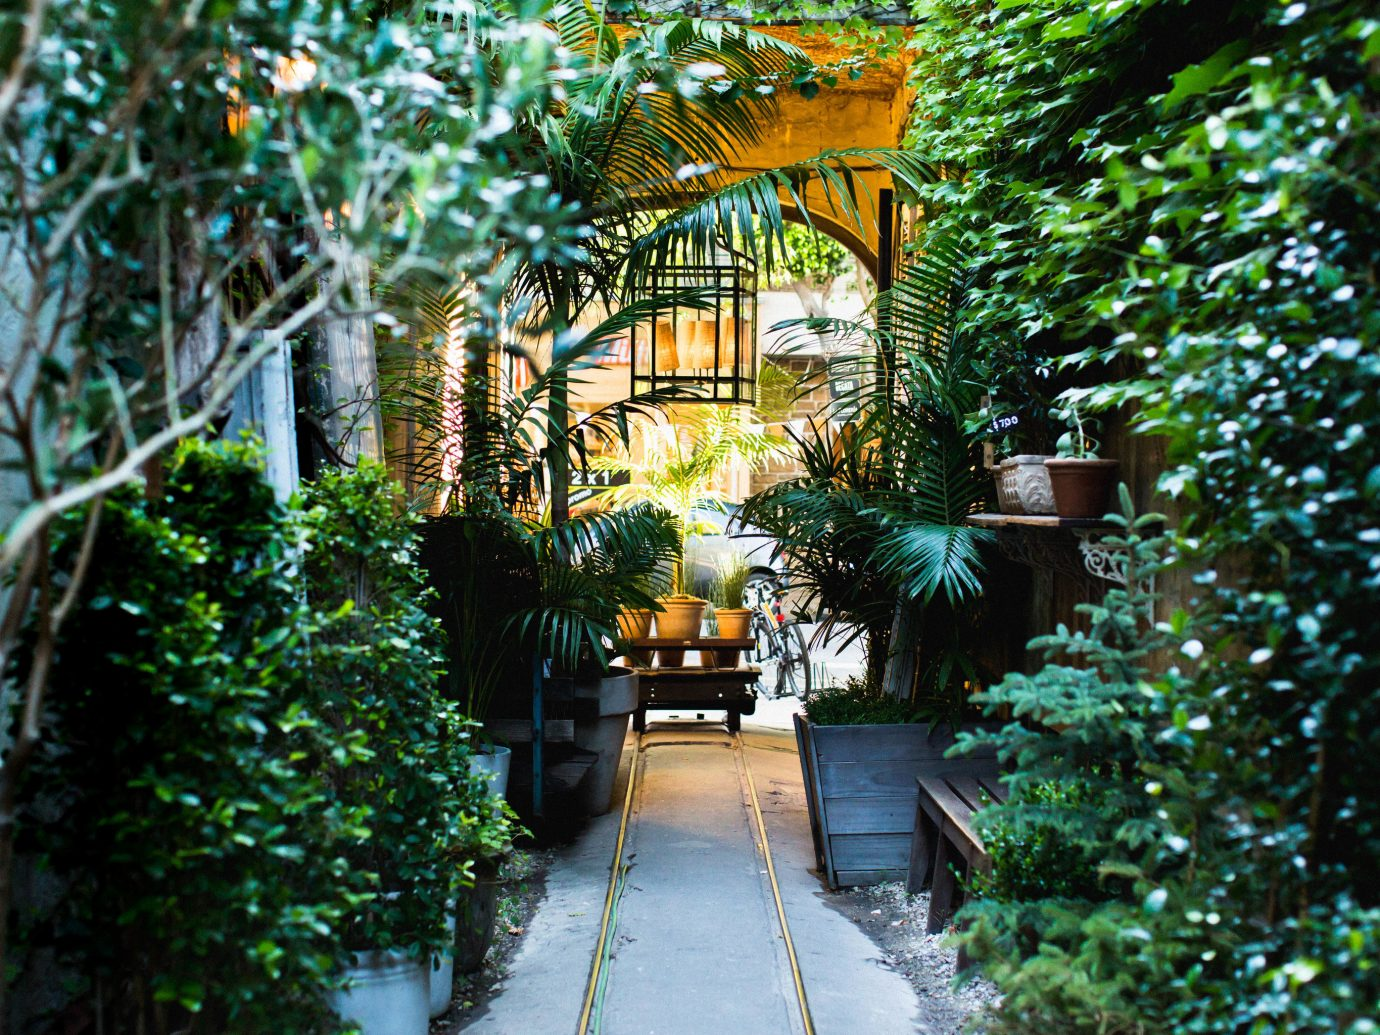 Trip Ideas tree outdoor house green neighbourhood botany Garden estate Courtyard home backyard flower yard plant Jungle Resort cottage way Forest bushes wooded surrounded